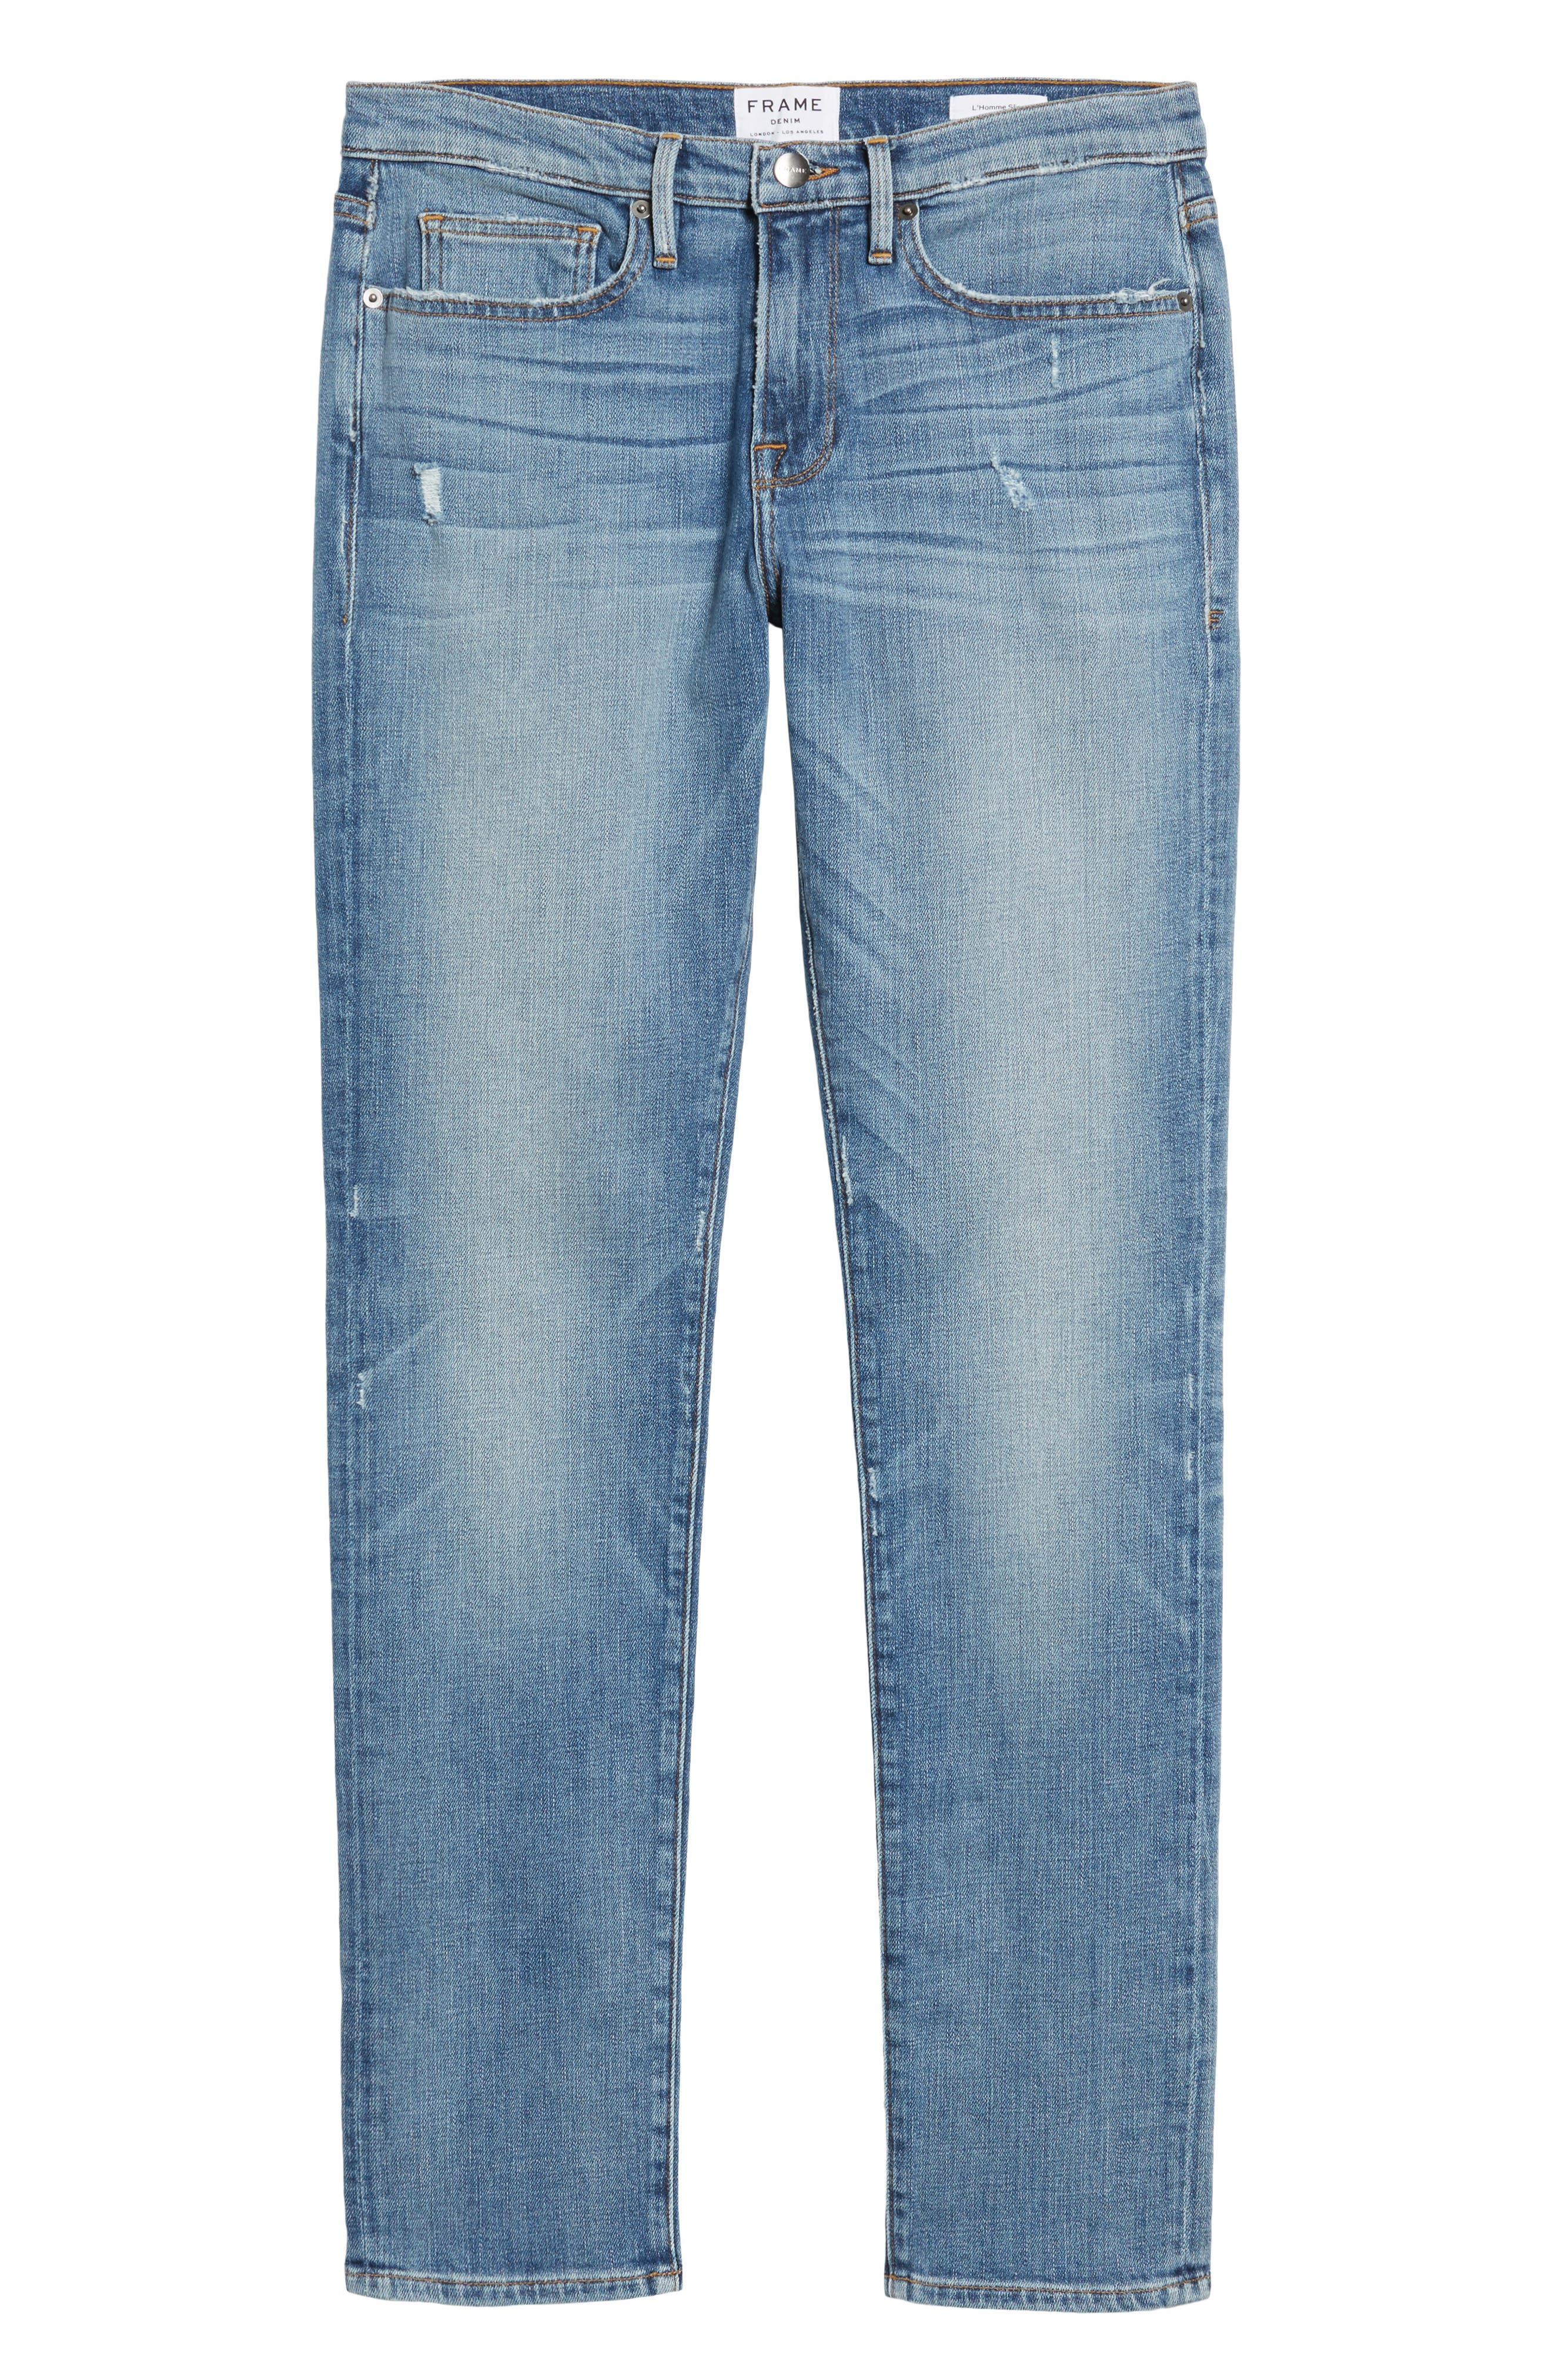 L'Homme Slim Fit Jeans,                             Alternate thumbnail 6, color,                             Beaudry